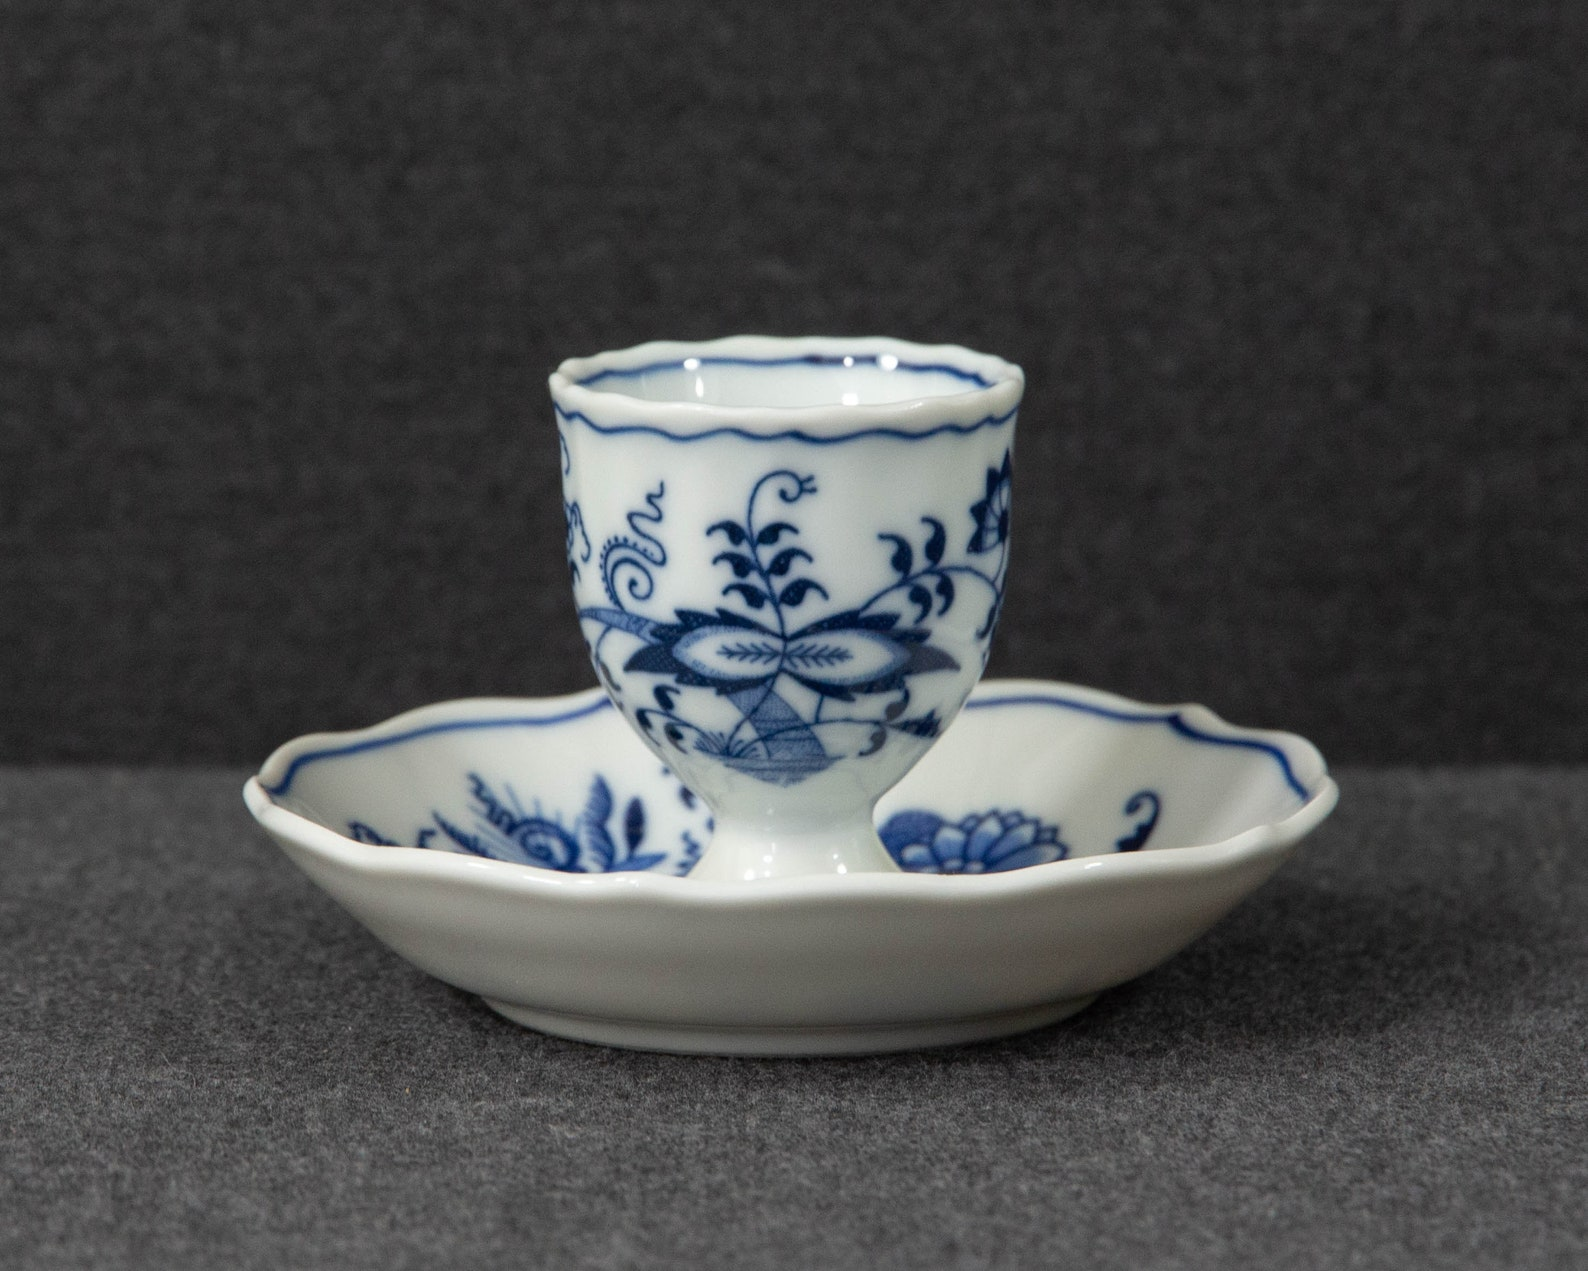 Zwiebelmuster - Egg Cup and Saucer